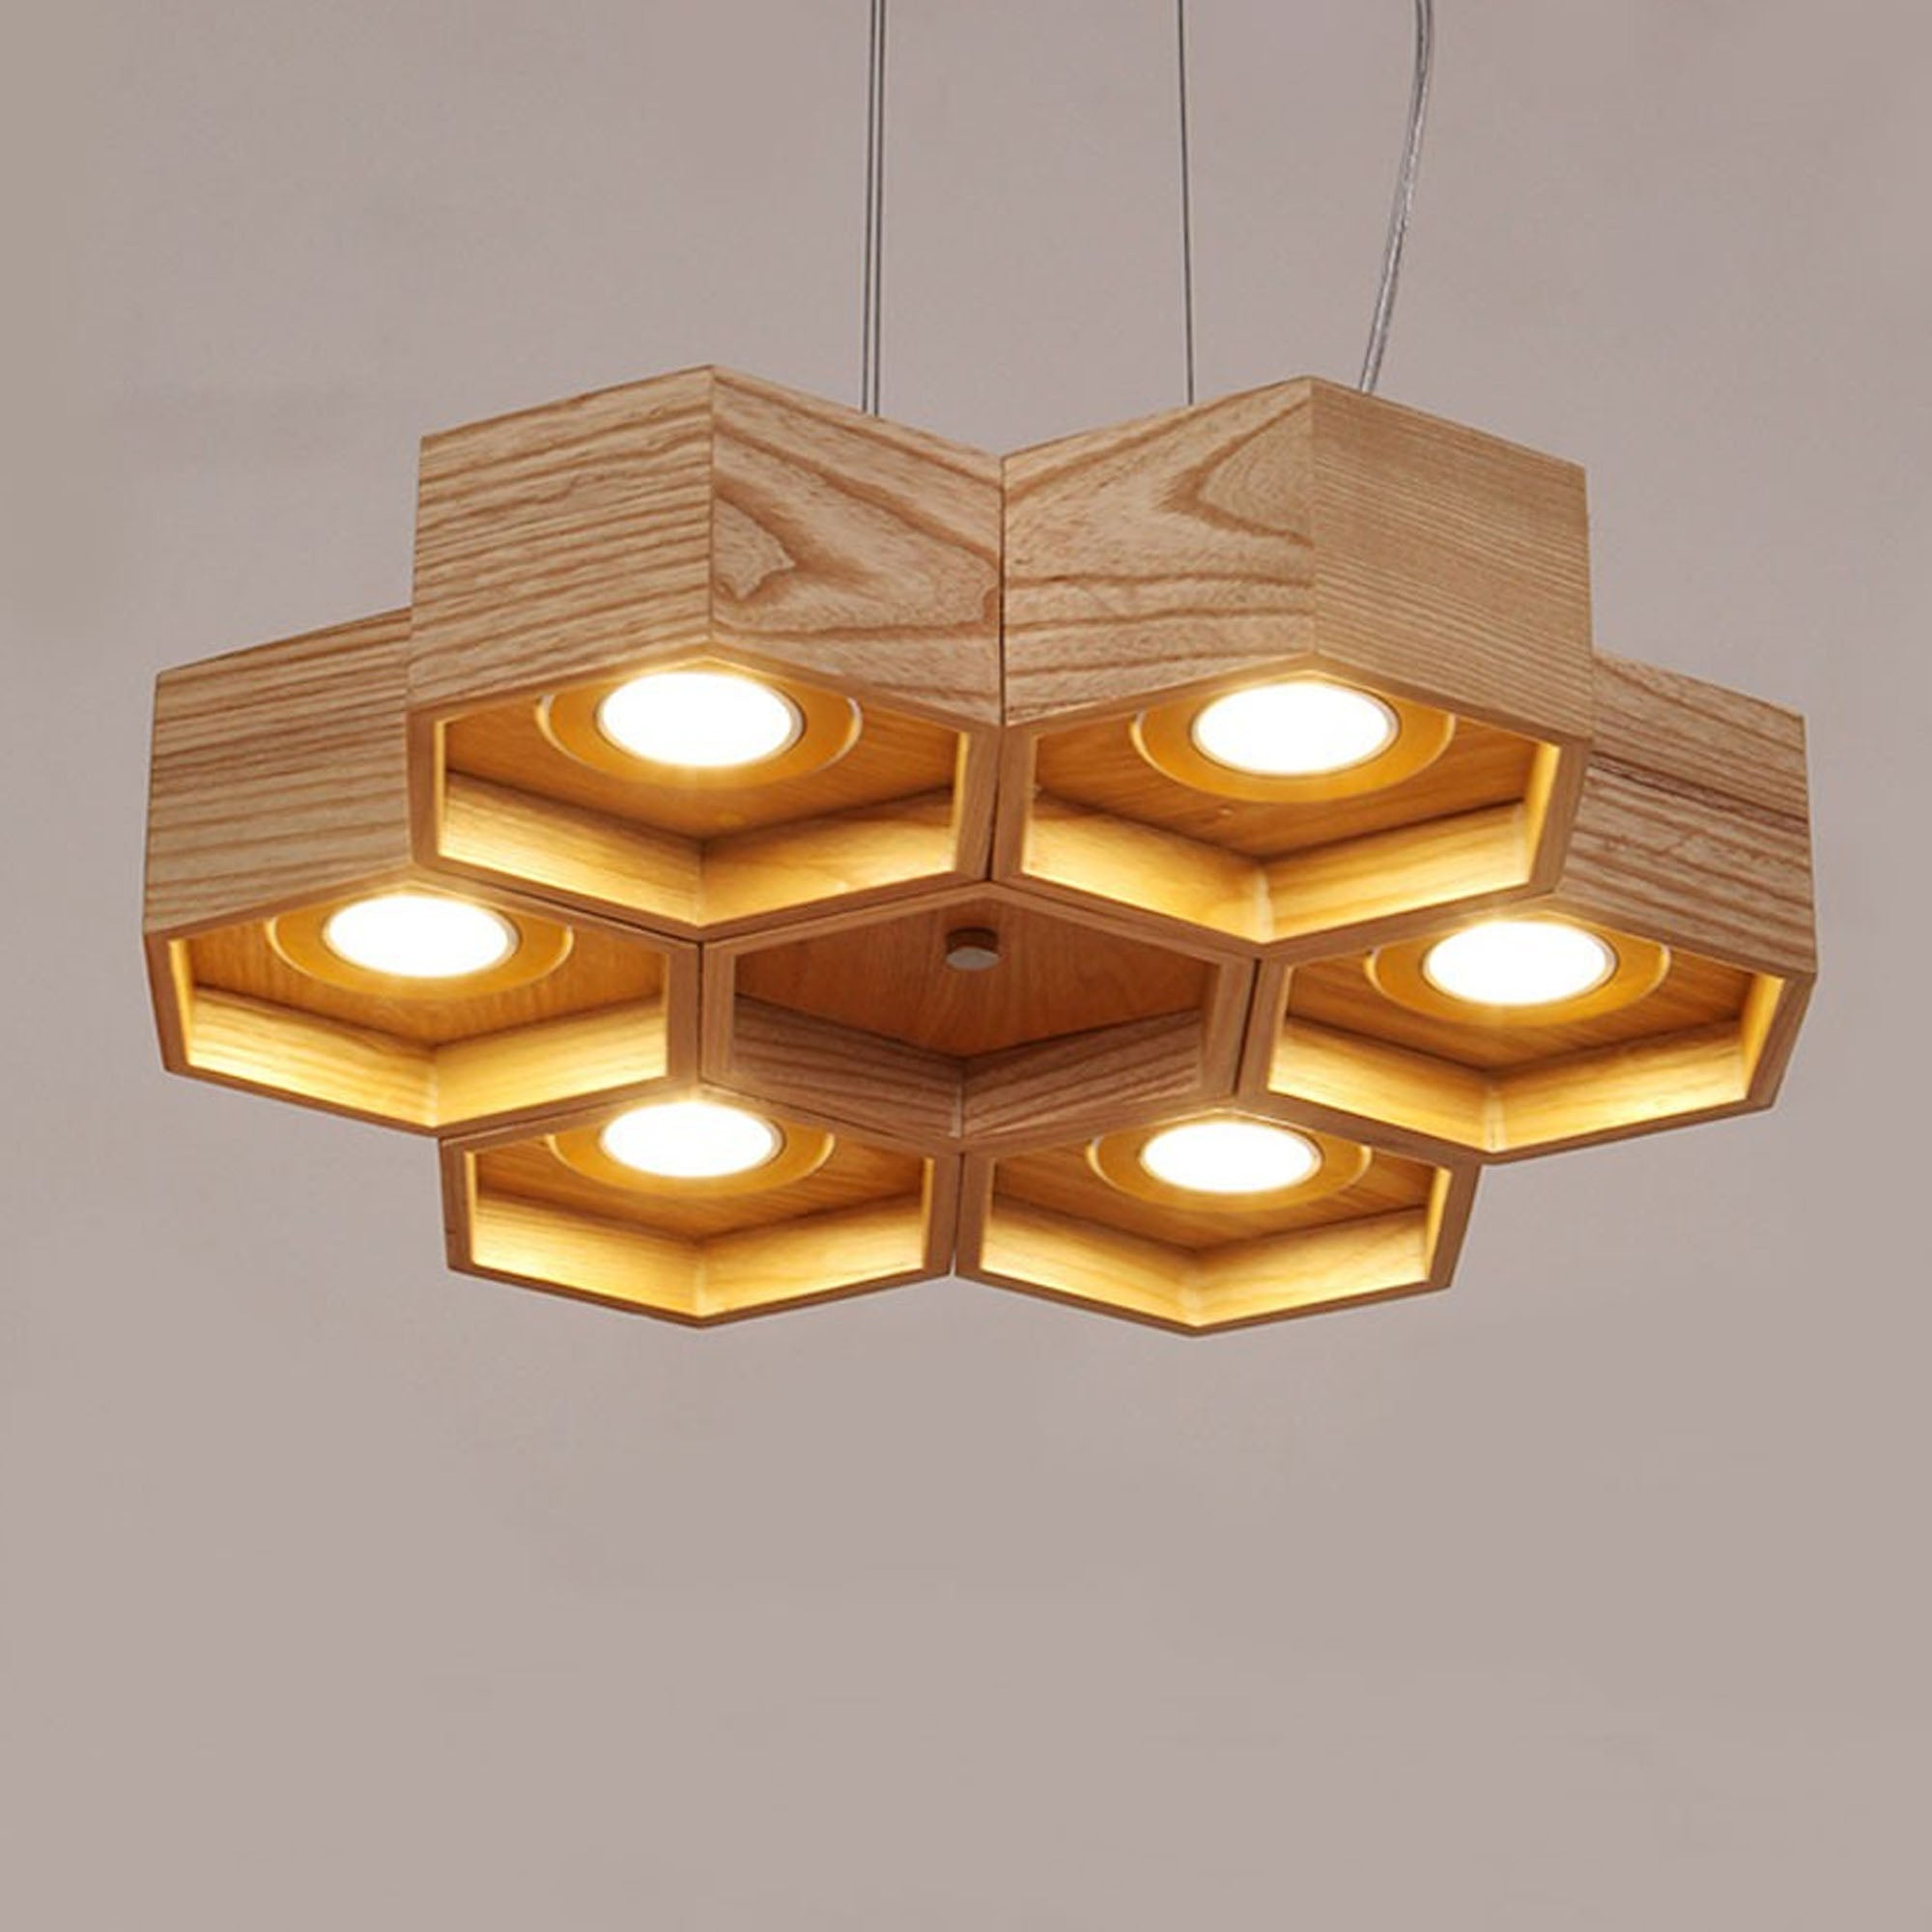 honeycomb Solid Wood pendant lamp with LED bulbs BPMT26-N